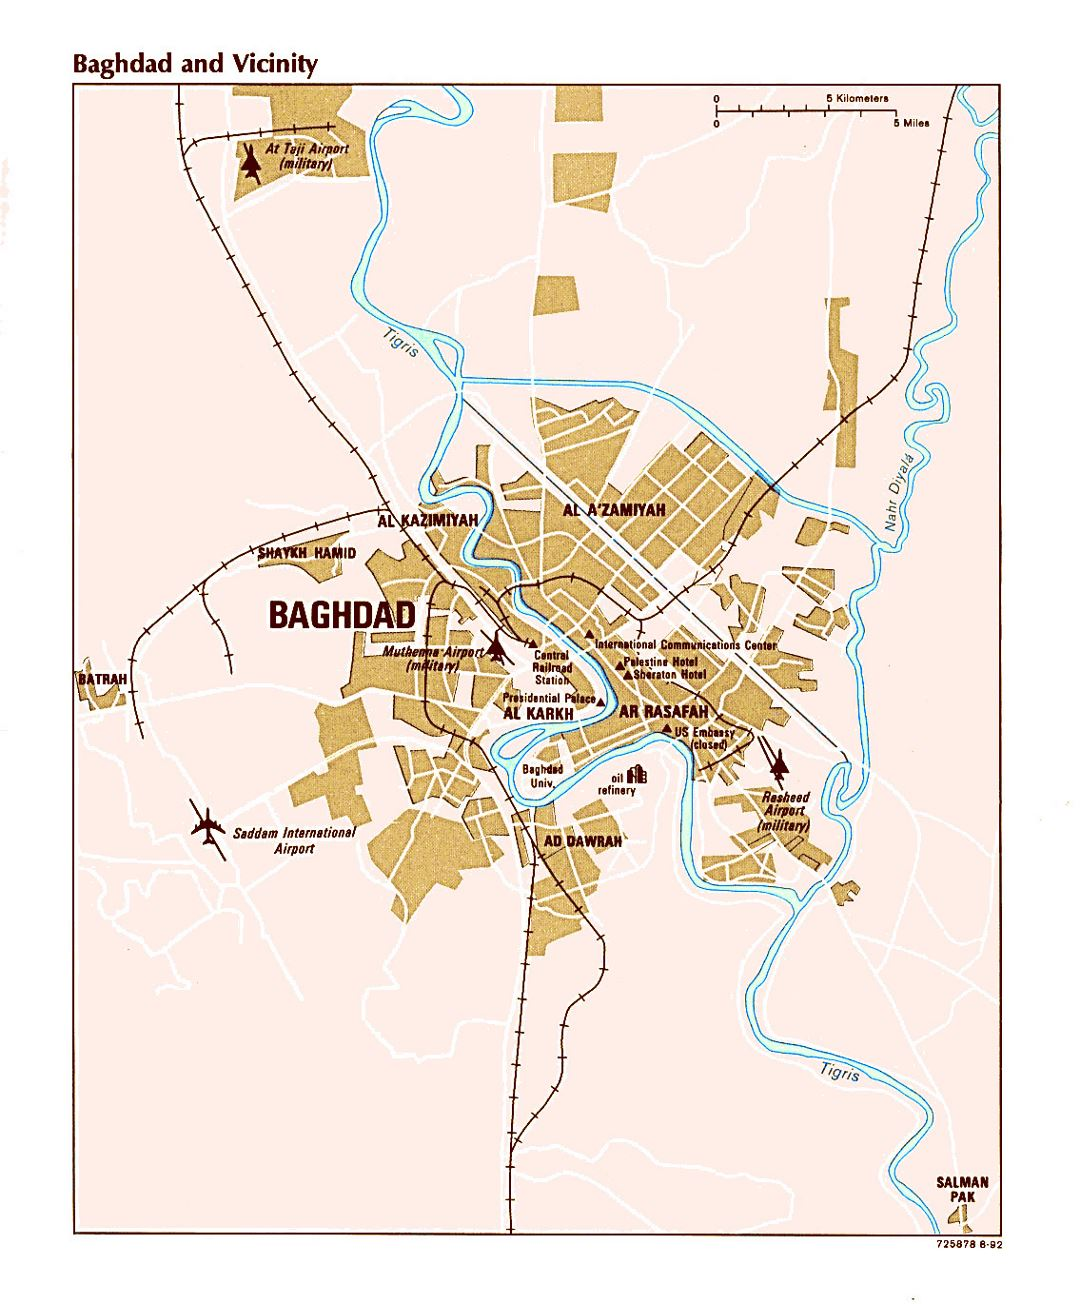 Large map of Baghdad and vicinity with airports